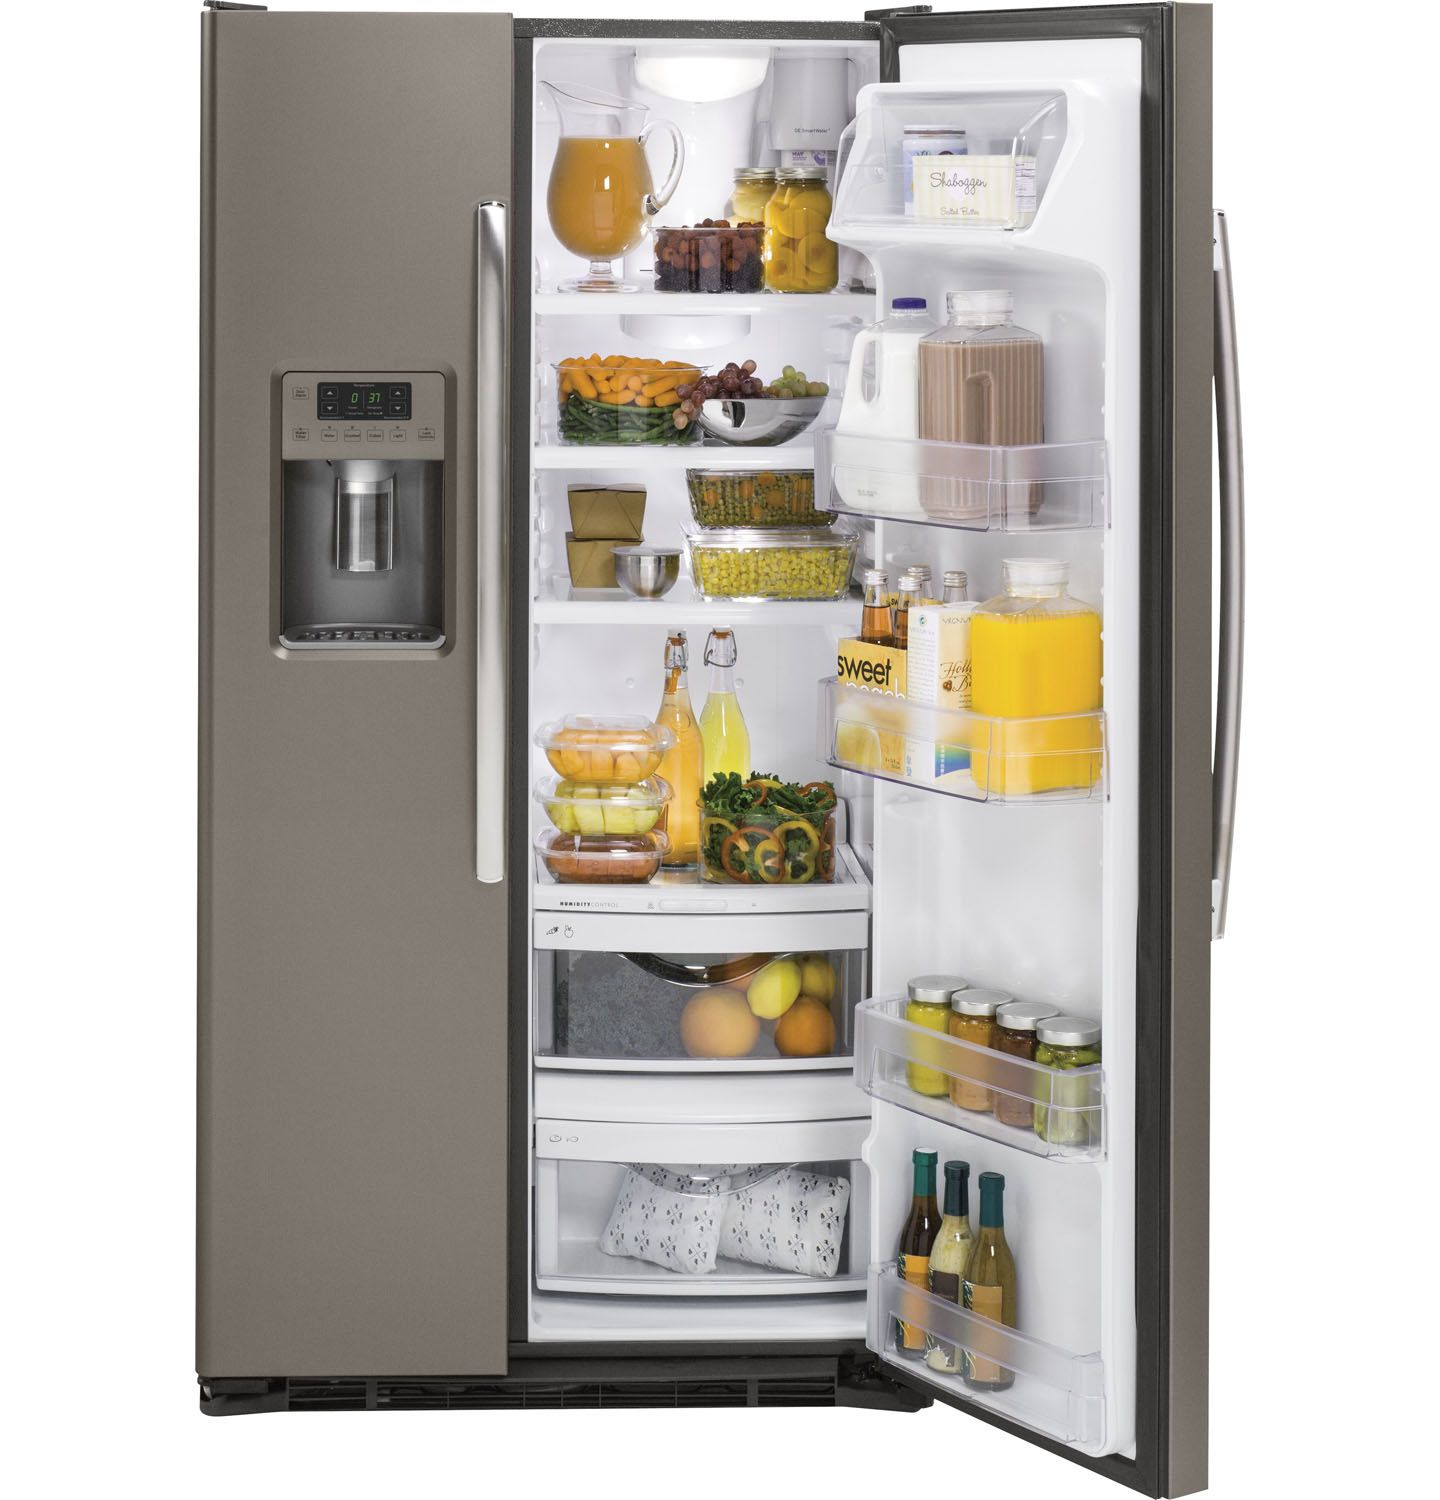 Ge 30 inch side by side white refrigerator - Main Image 1